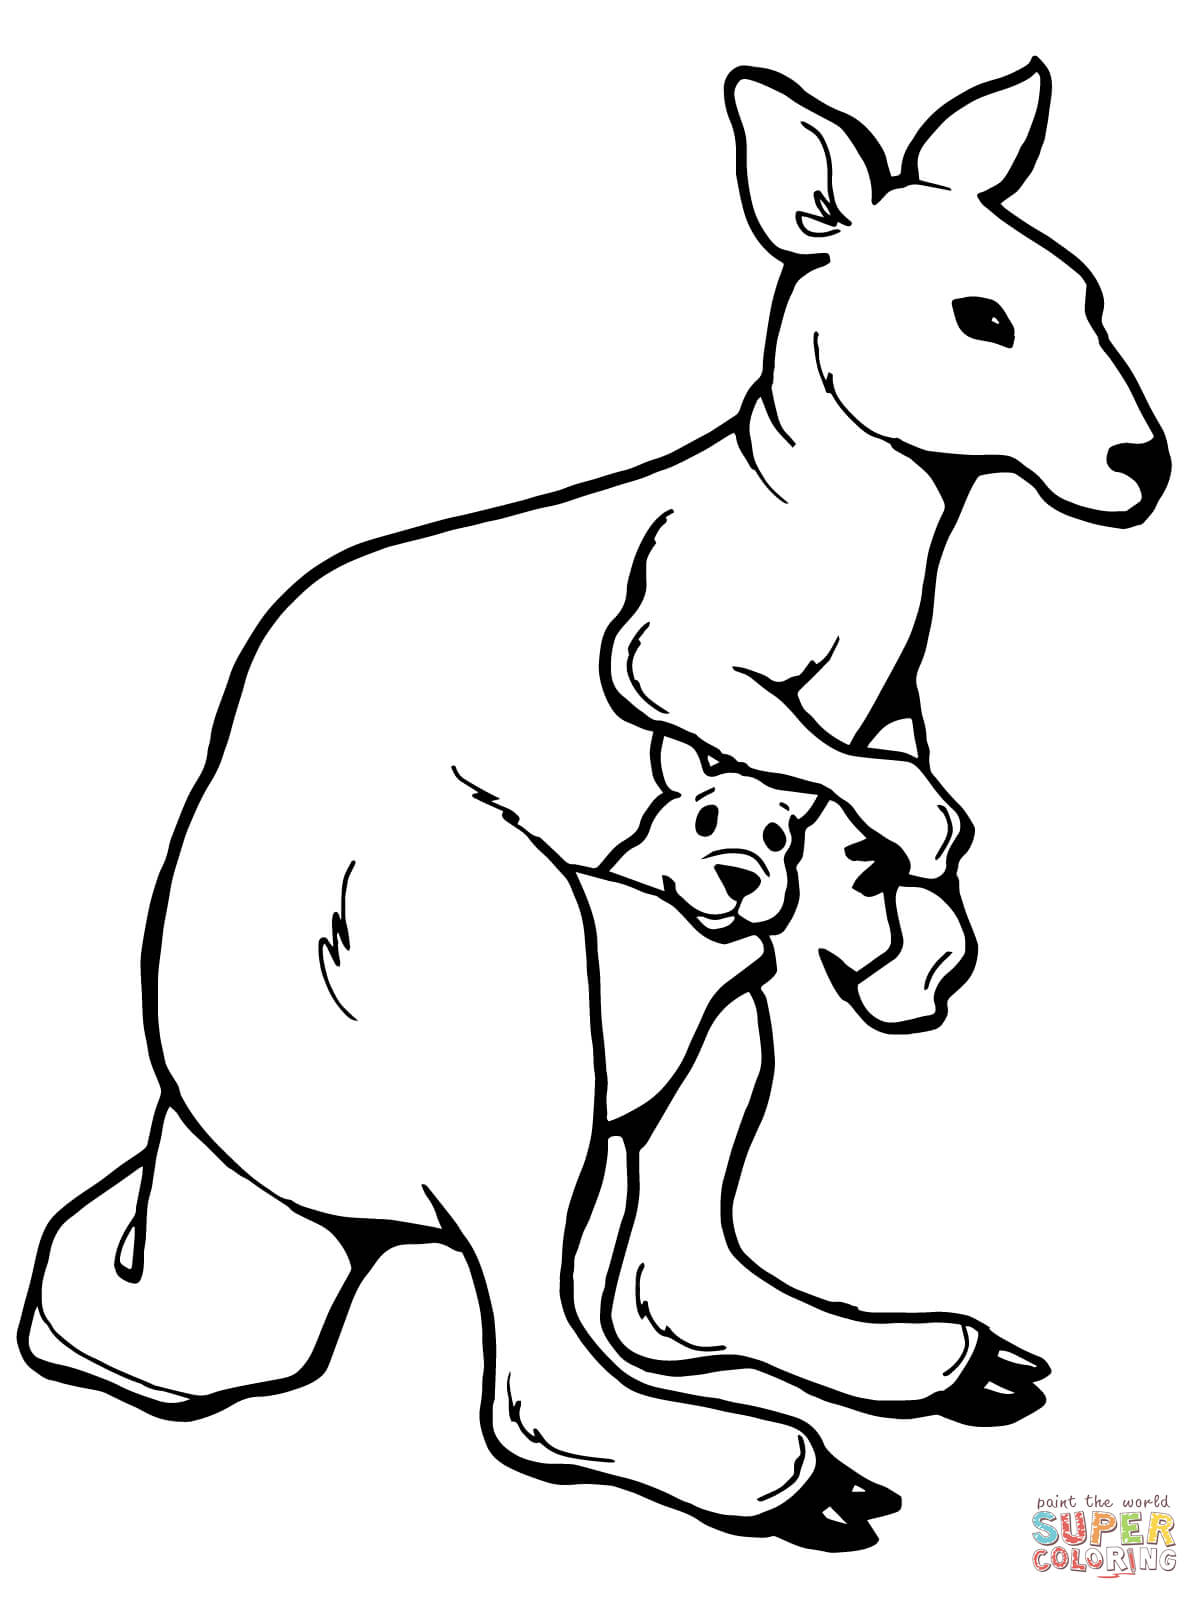 Kangaroo With A Joey Coloring Page